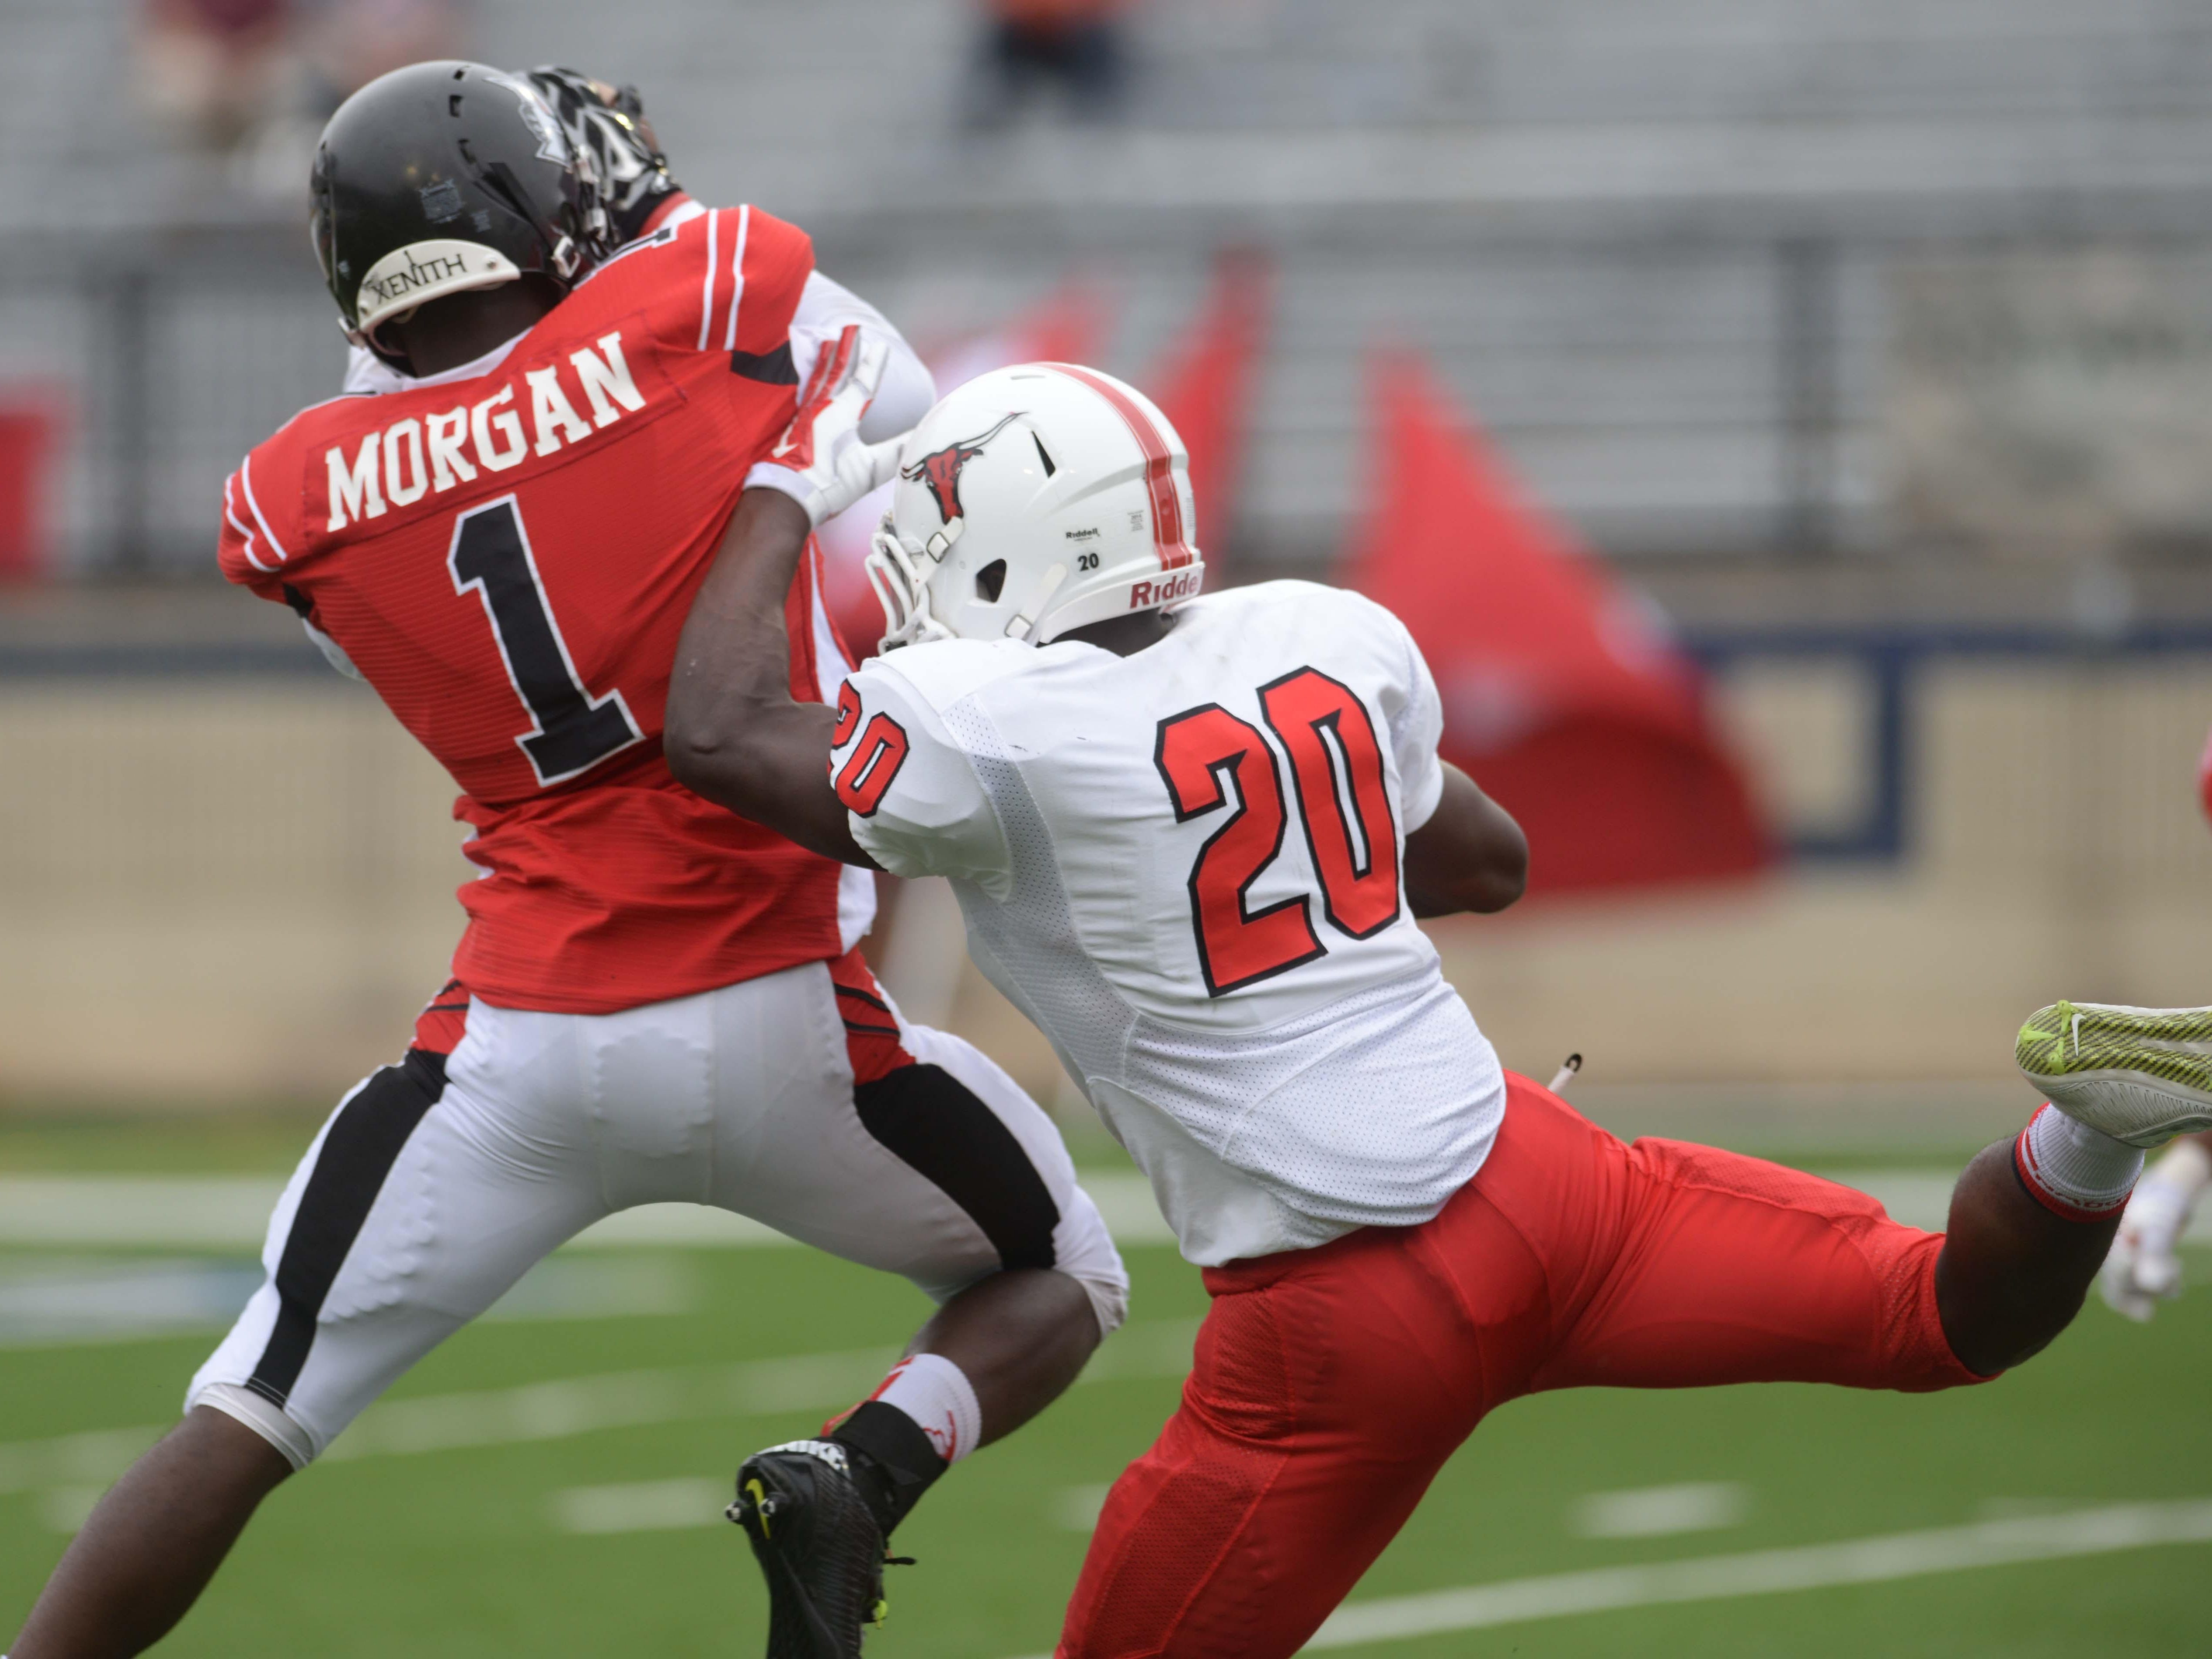 Parkway's C.J. Morgan (1) intercepts a pass from Marshall's John Love (20) during the 2014 Battle on the Border at Independence Stadium.